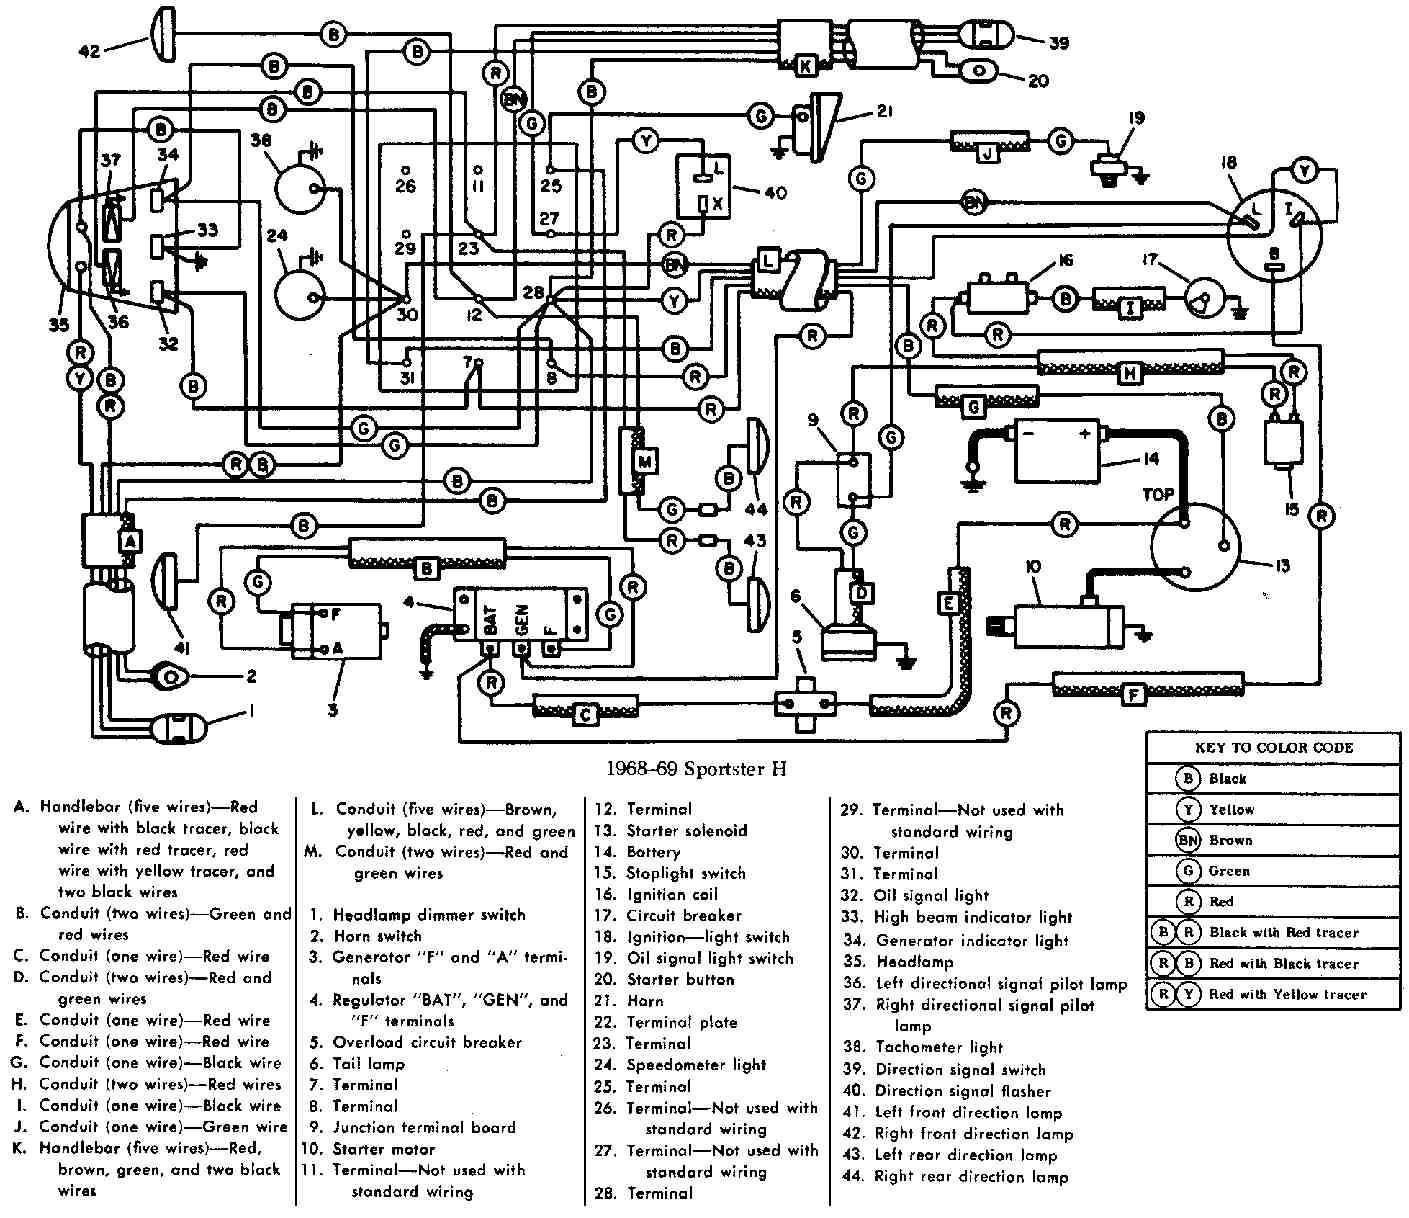 hight resolution of 94 harley softail wiring diagram wiring diagram blog 1991 fatboy diagram of ignition switch